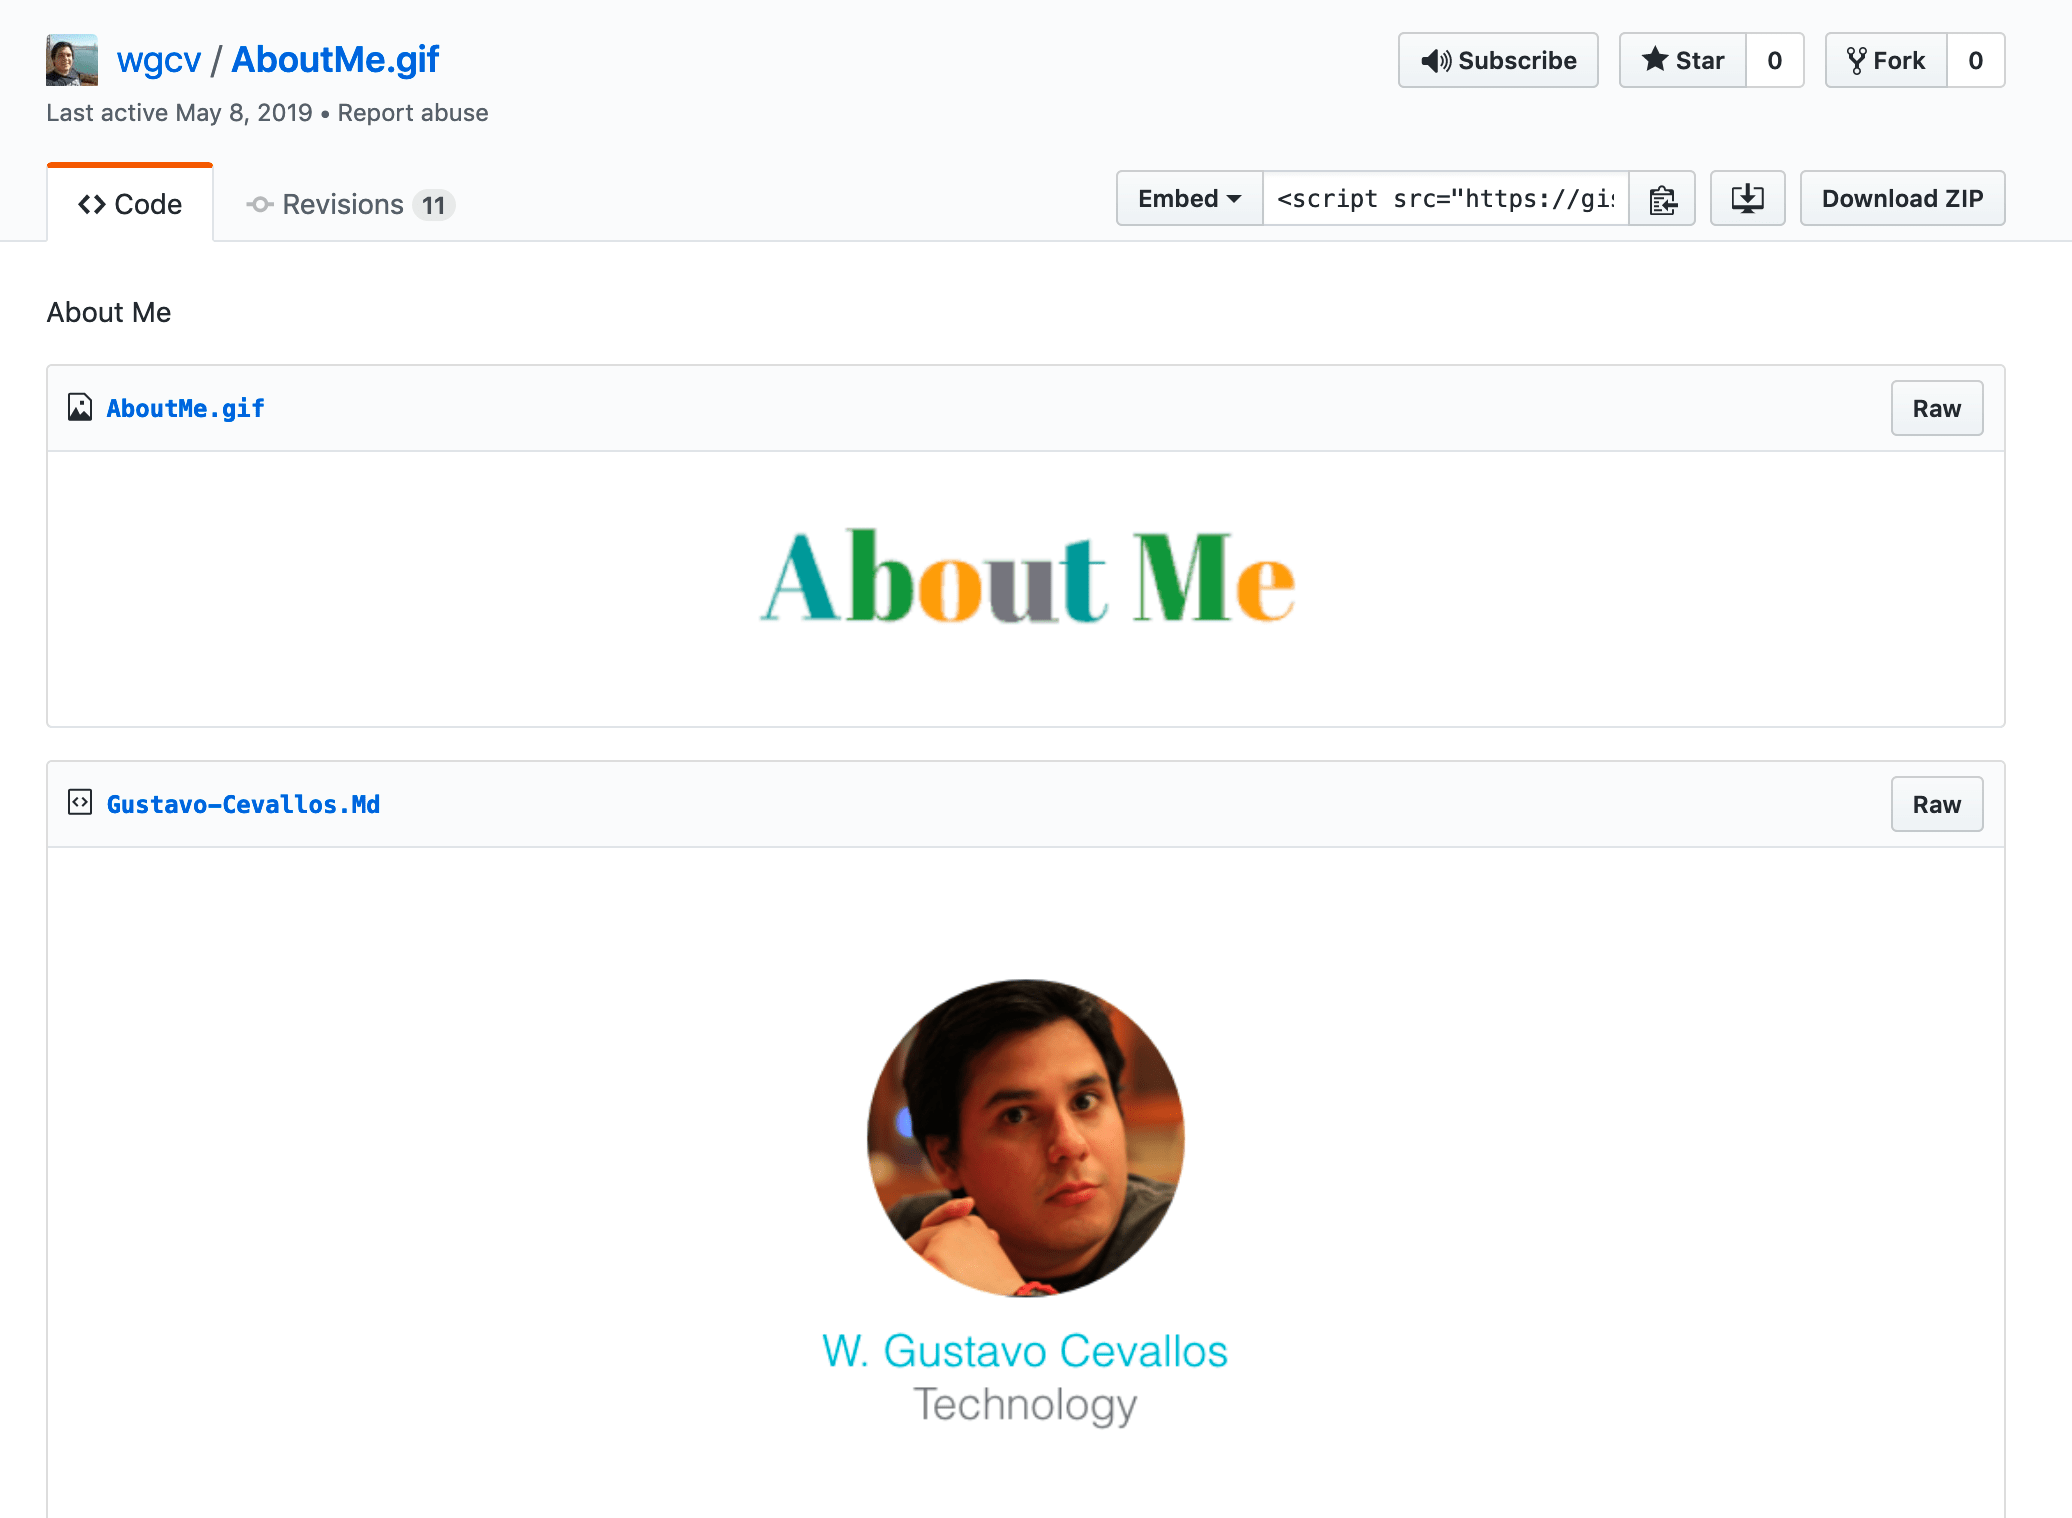 Gustavo's 'About Me' gist shows a gif as the first file.